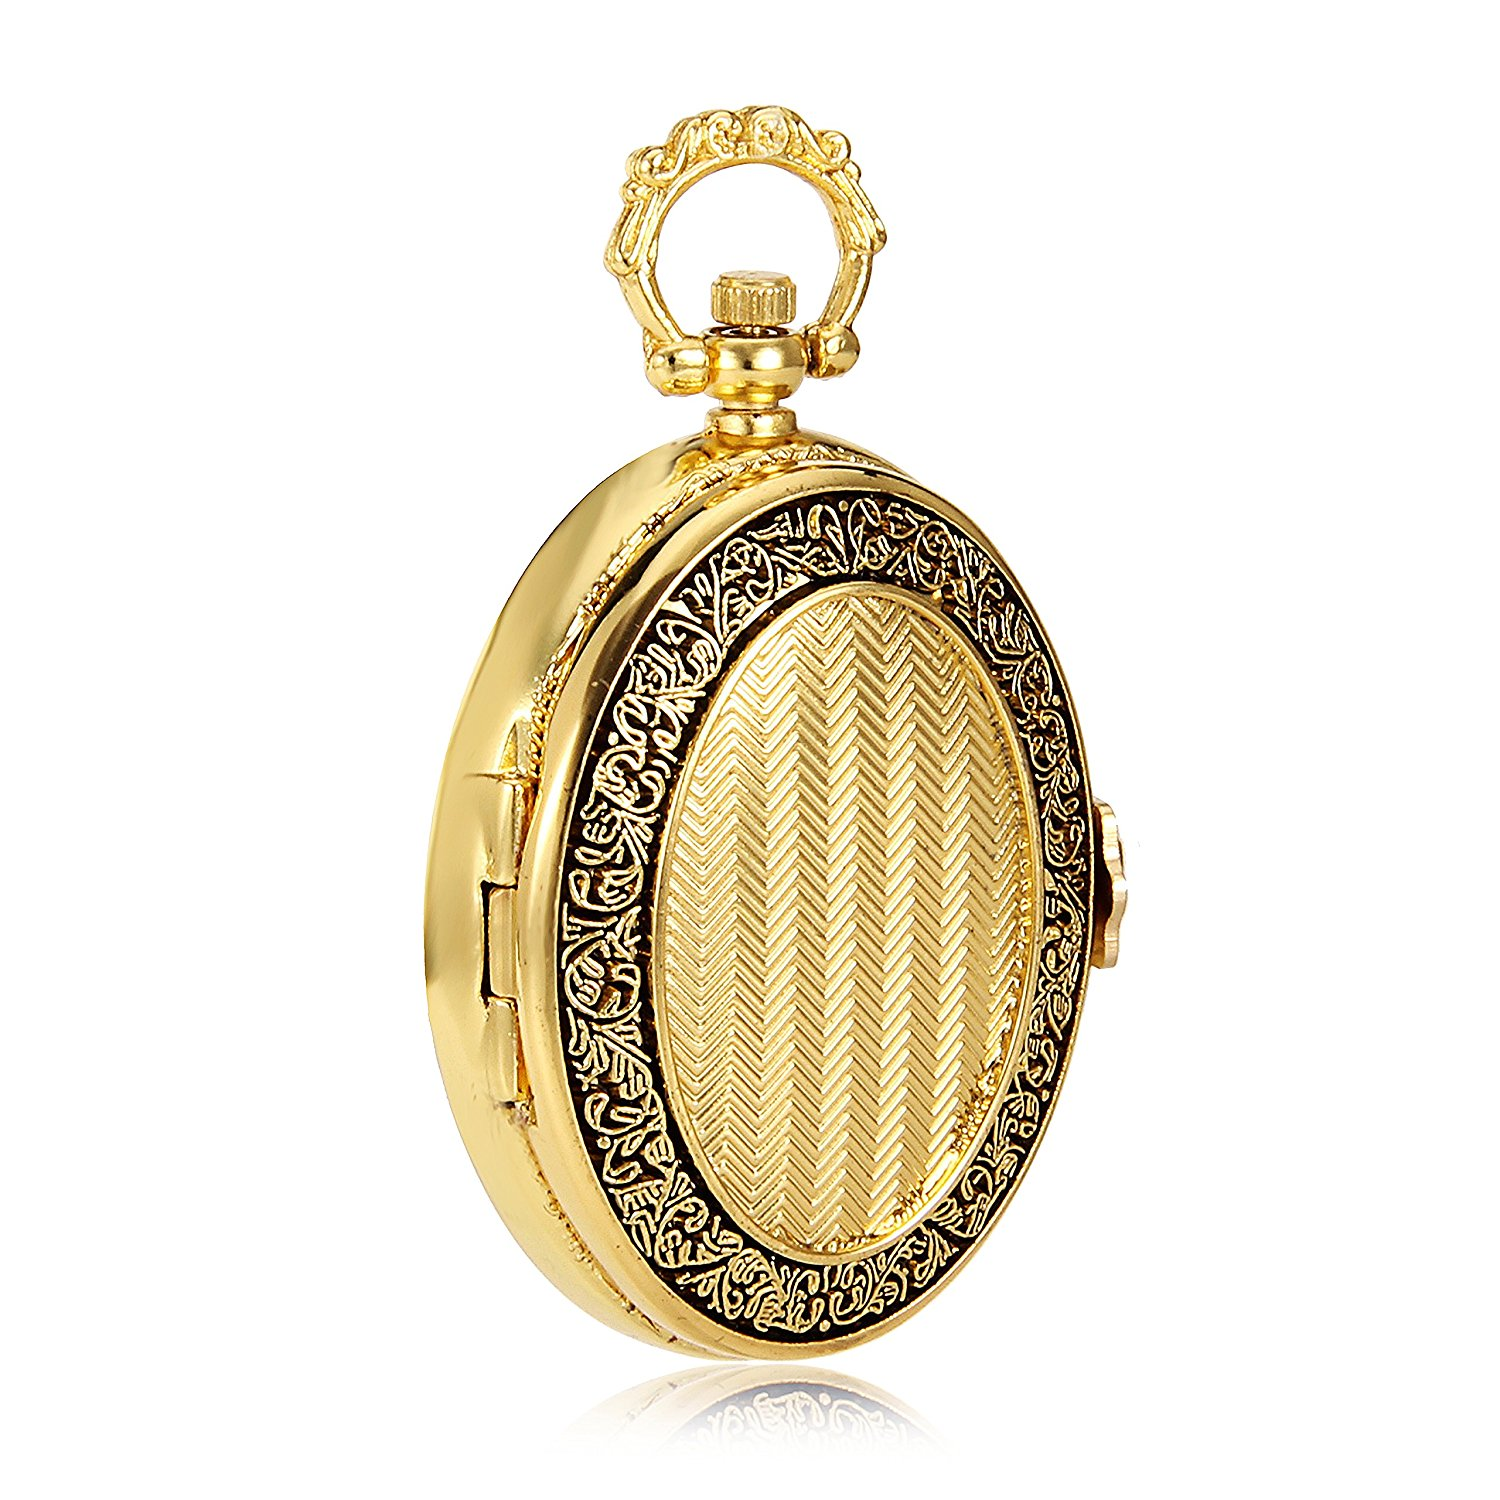 Mens pocket watches with chain images mens gold pocket watches gifts - Oval Gold Mechanical Pocket Watch Jewelry Vintage Antique Watch Imperial Royal Style Luxury Gift Watch Mens Pocket Watch W Chain